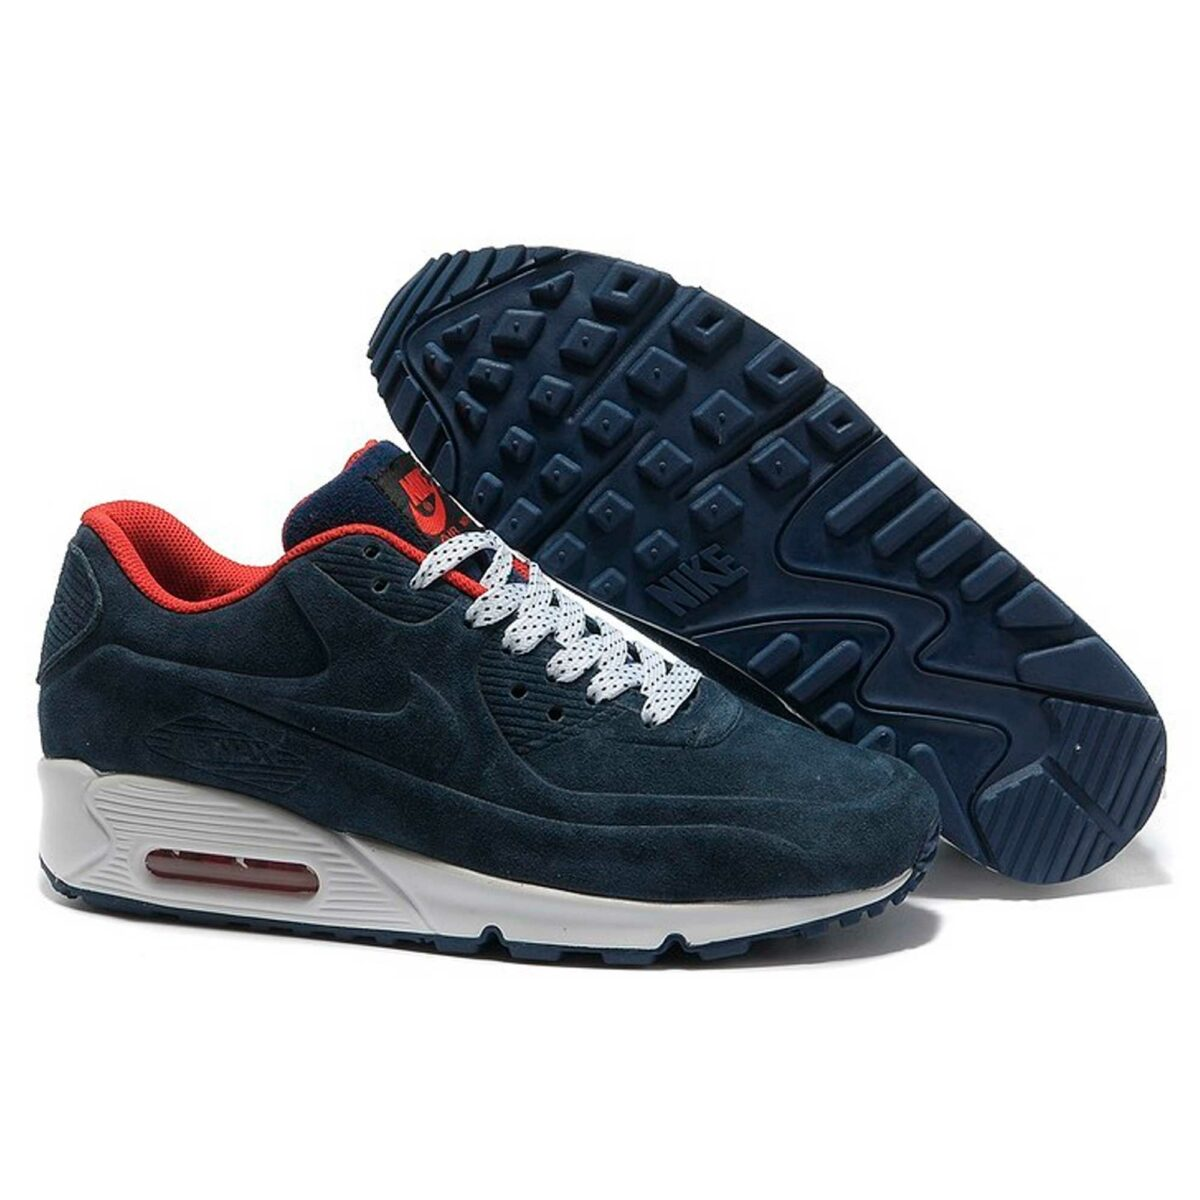 nike air max 90 VT dark blue 472489-416 купить